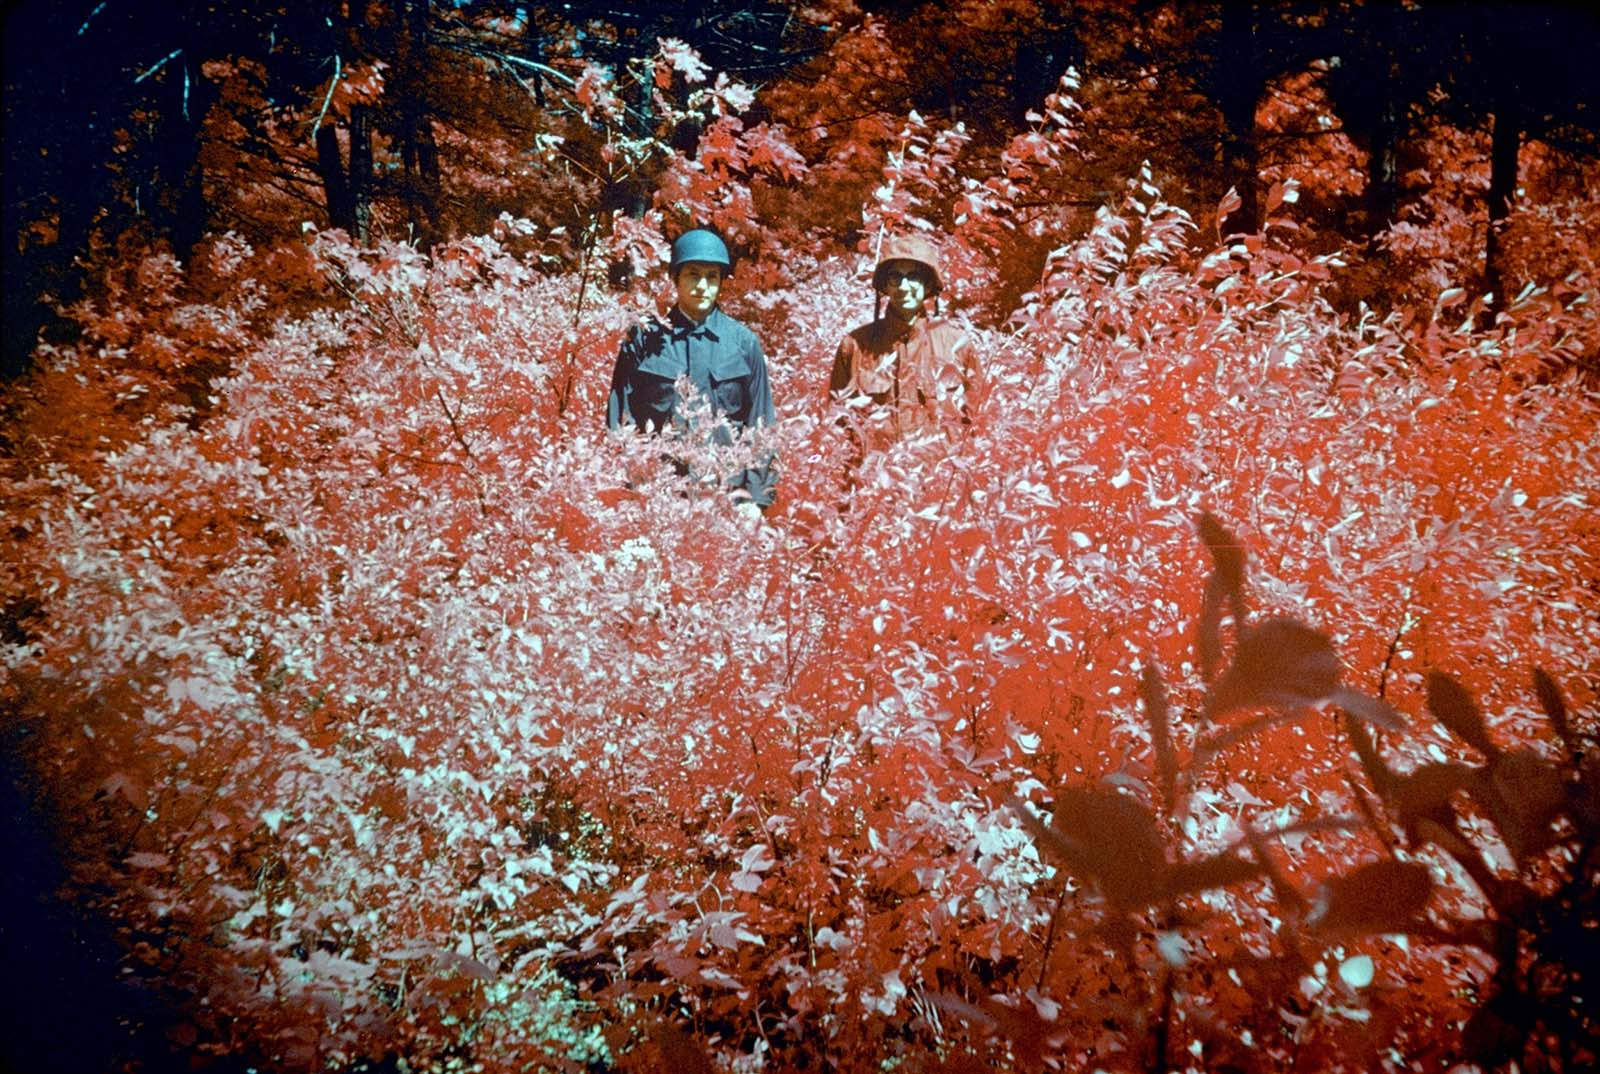 Infra-red camouflage, 1974.